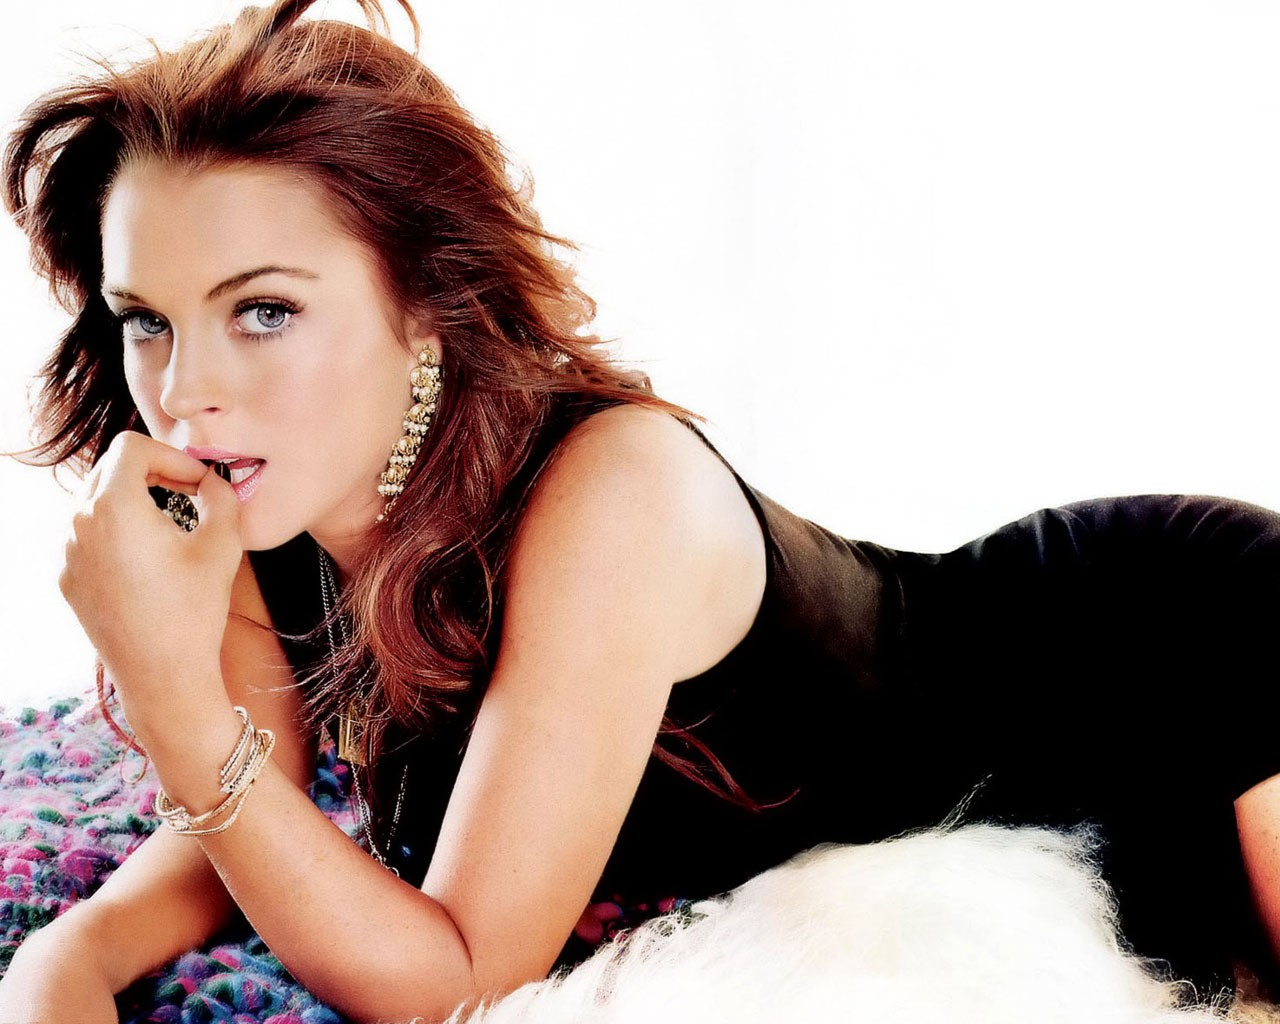 Lindsay Lohan Headed For 'Celebrity Apprentice'? - Parade